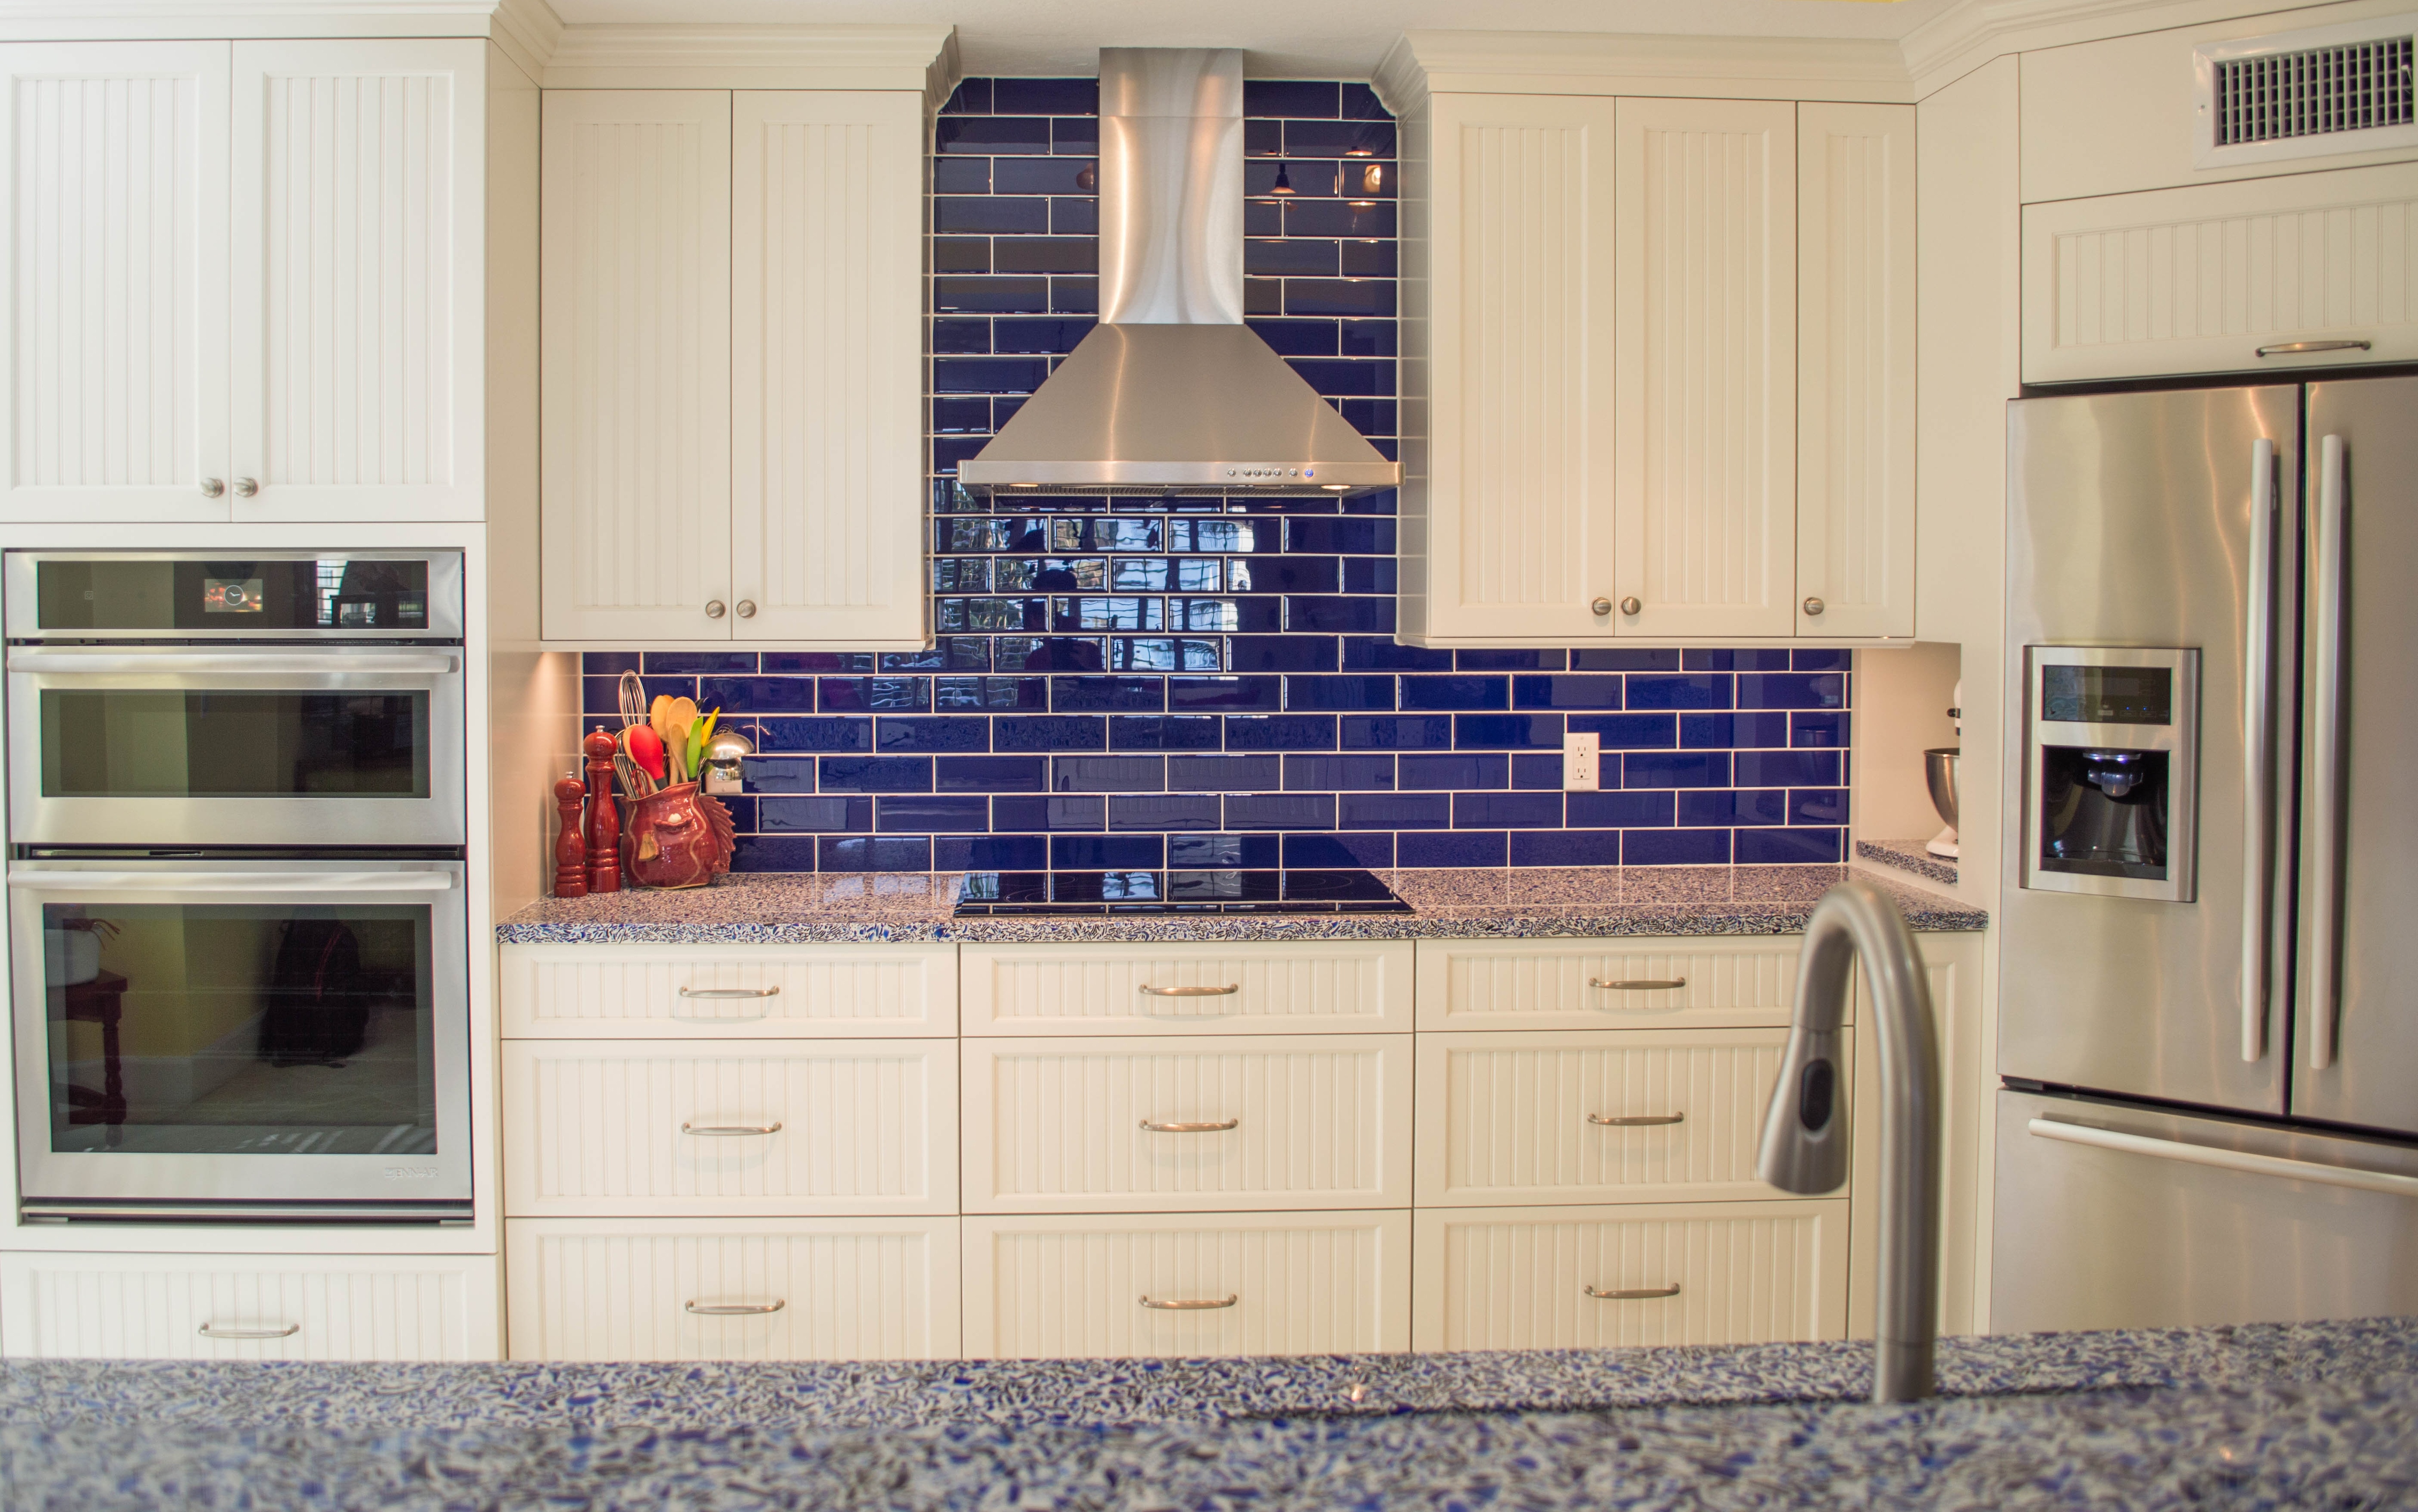 1-waterview kitchens featuring crystal cabinets and vetrazzo recycled glass-646673-edited